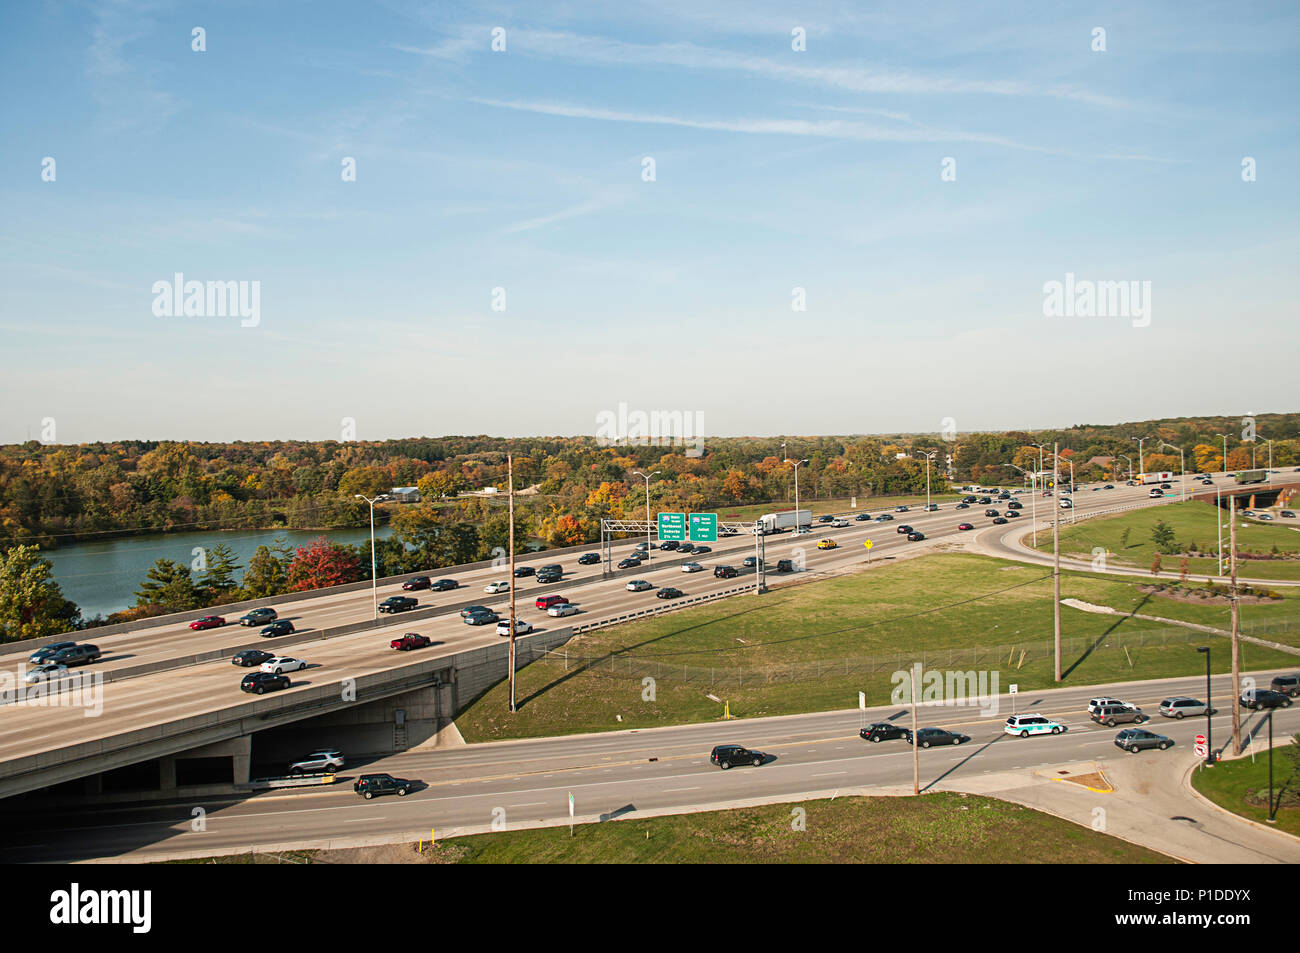 Highways and roadways in Illinois. - Stock Image